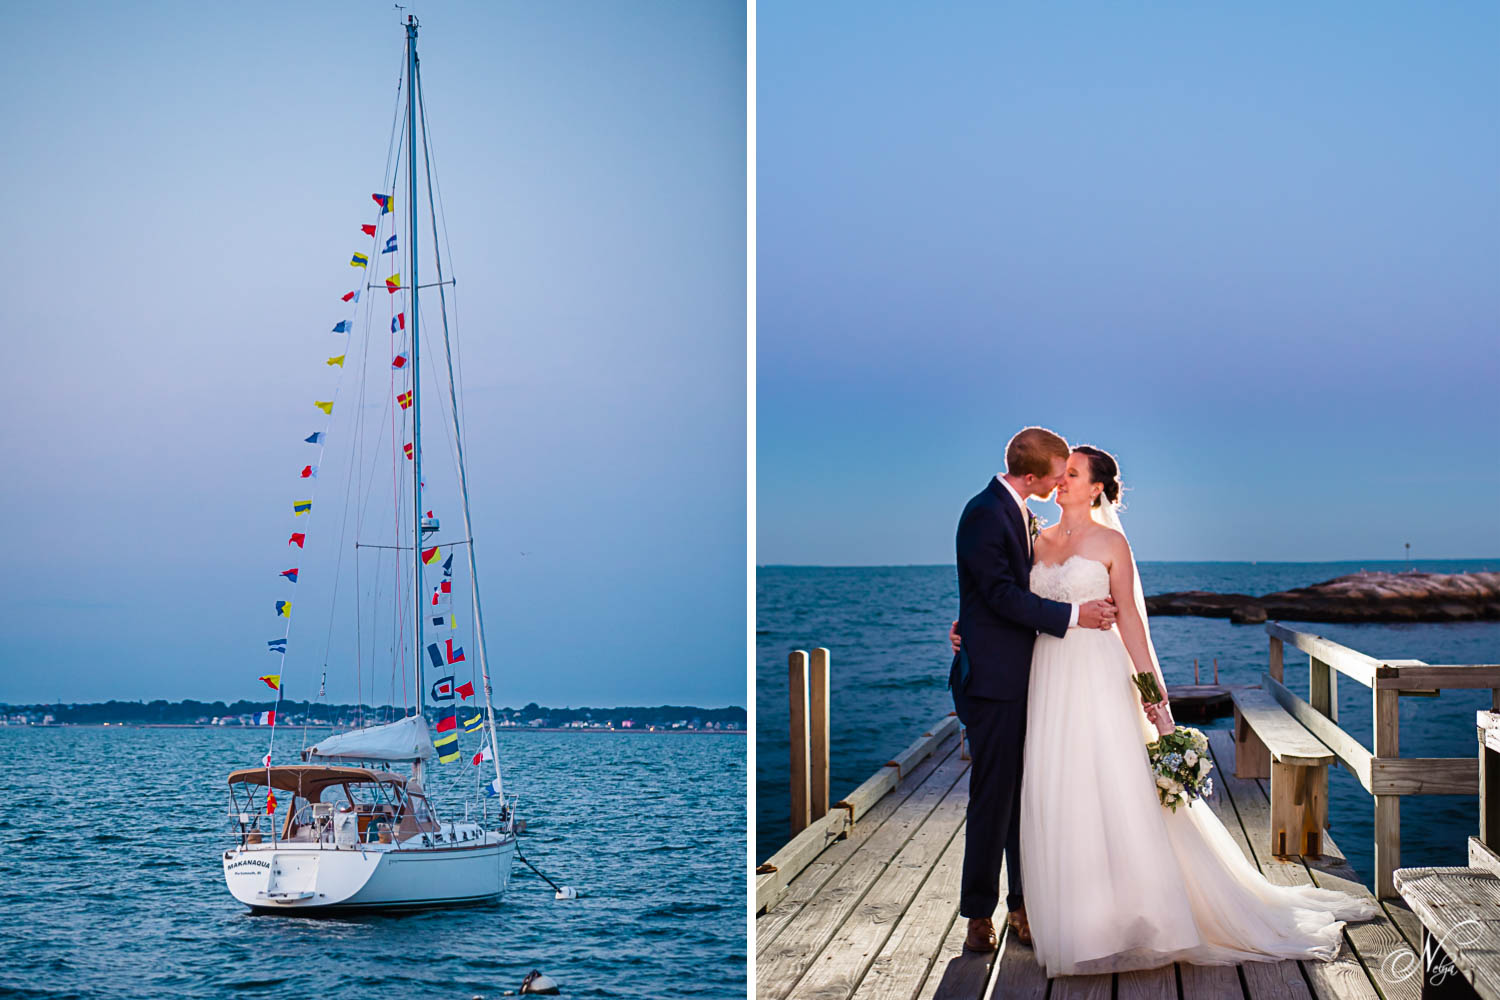 sail boat at night and bride and groom on the dock